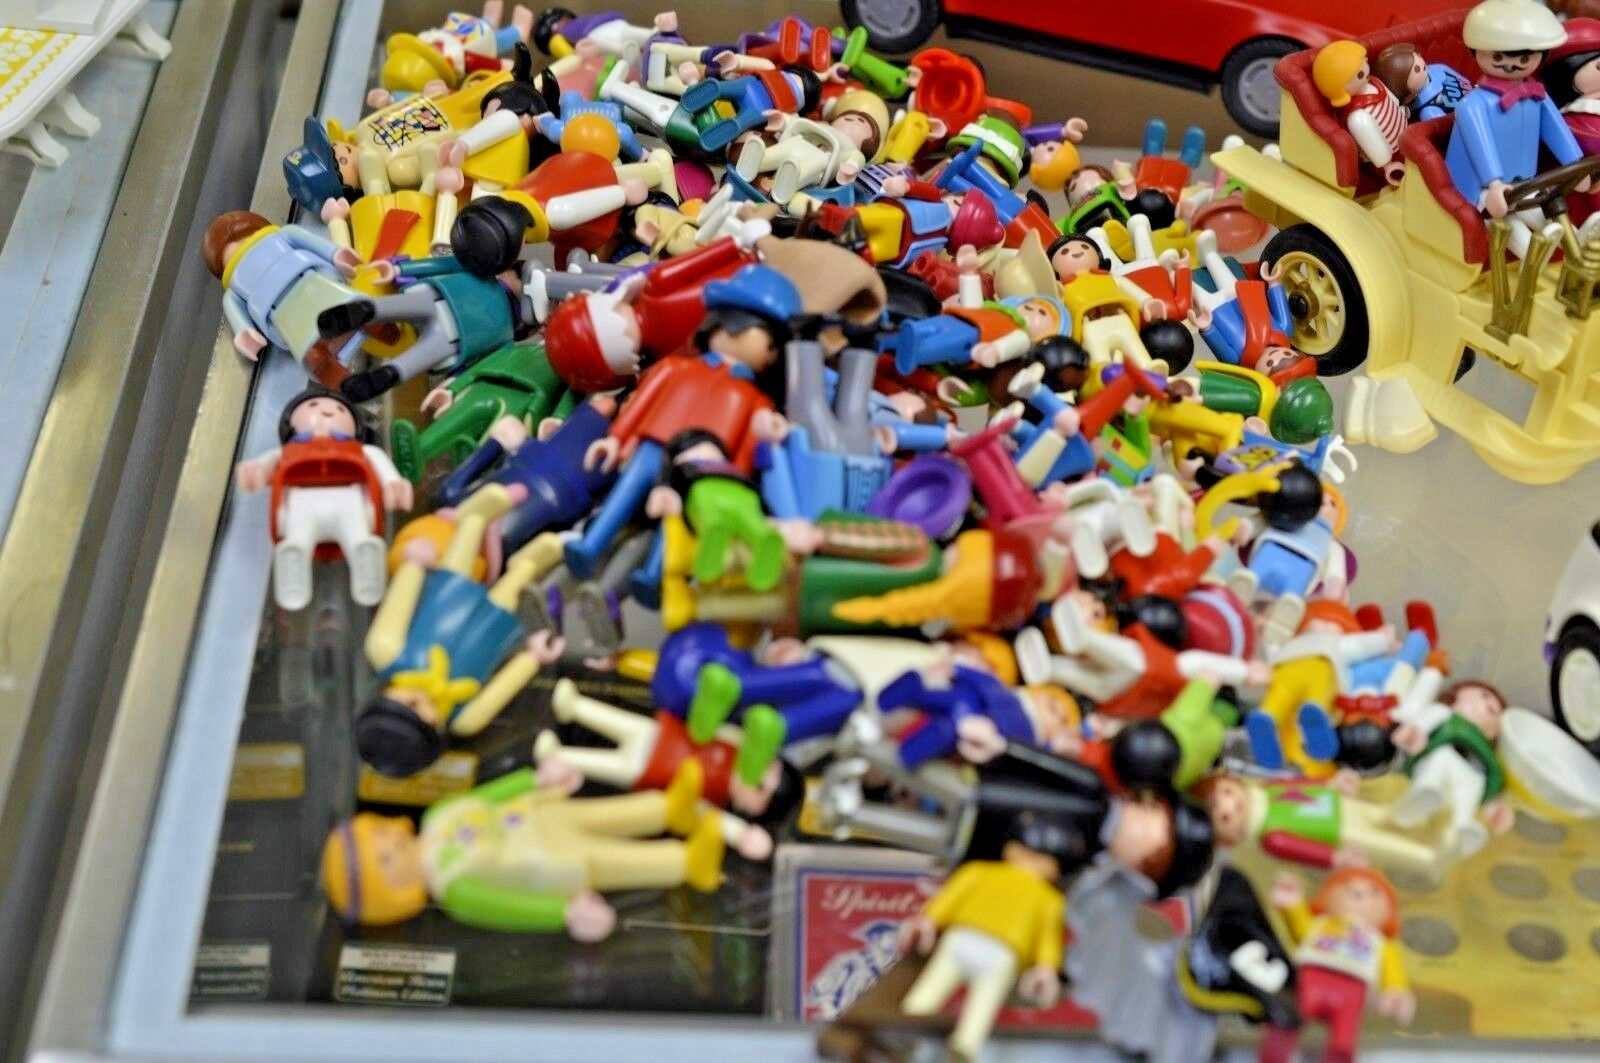 Play School people and sets lot over 450 items items items 9c9d7c